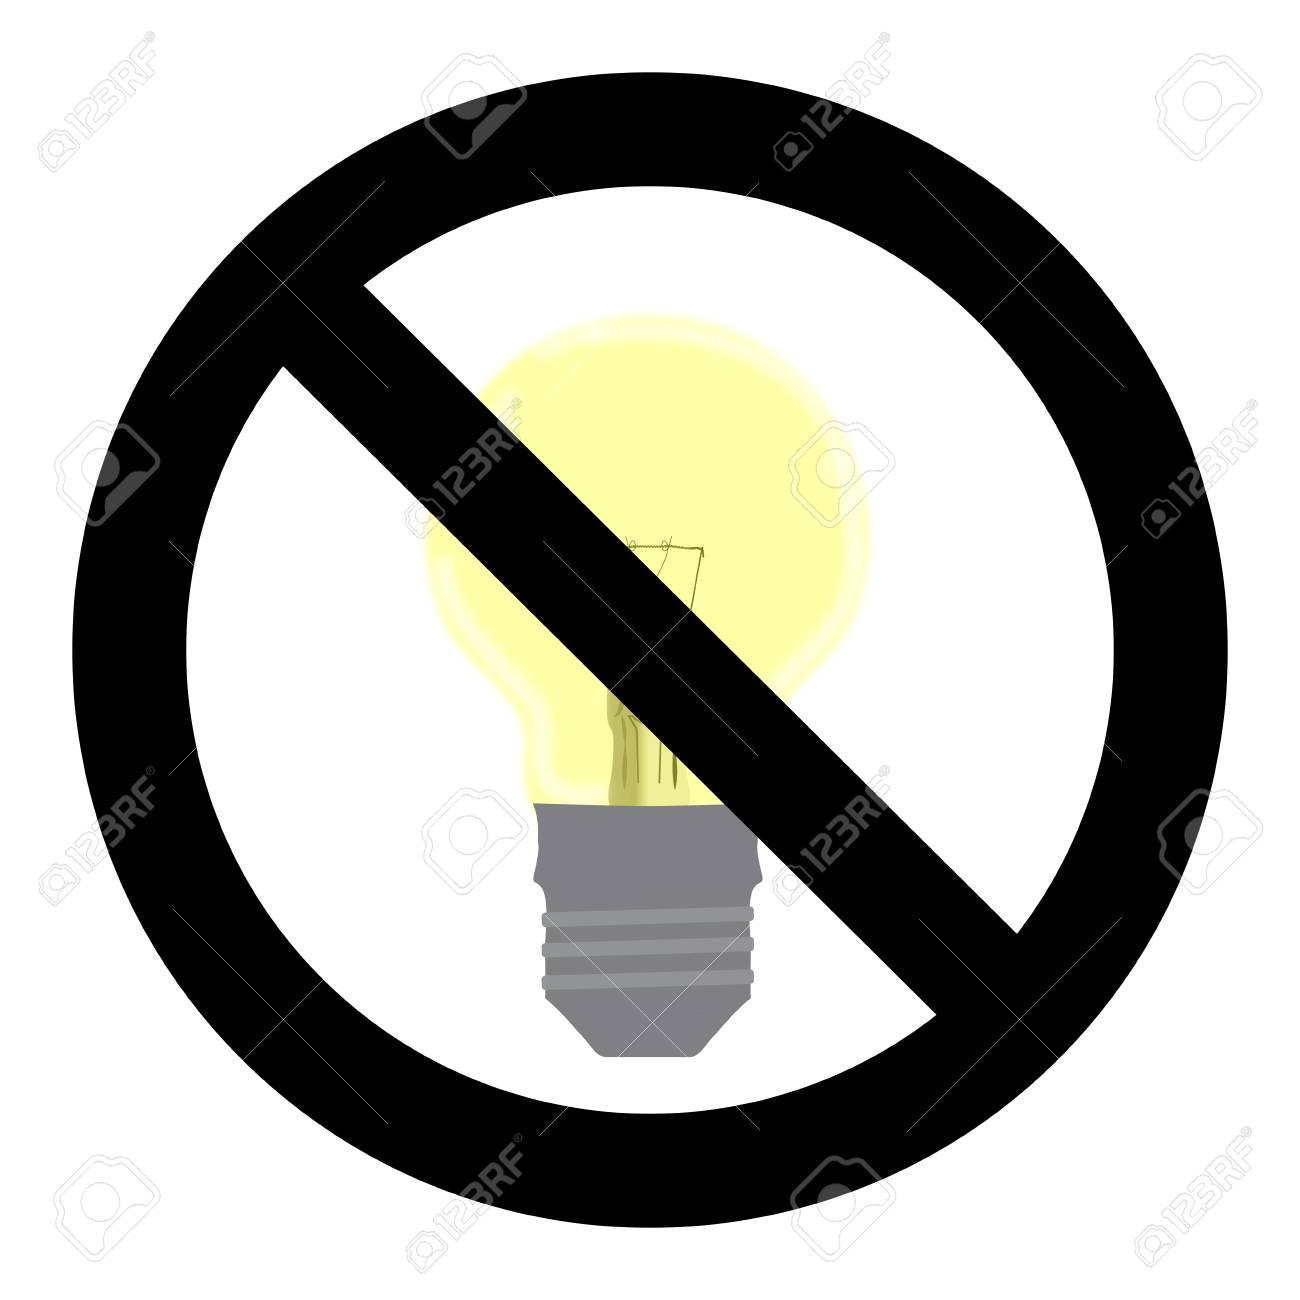 1300x1300 No Light Symbol. Do Not Turn On Sign. Control Electricity